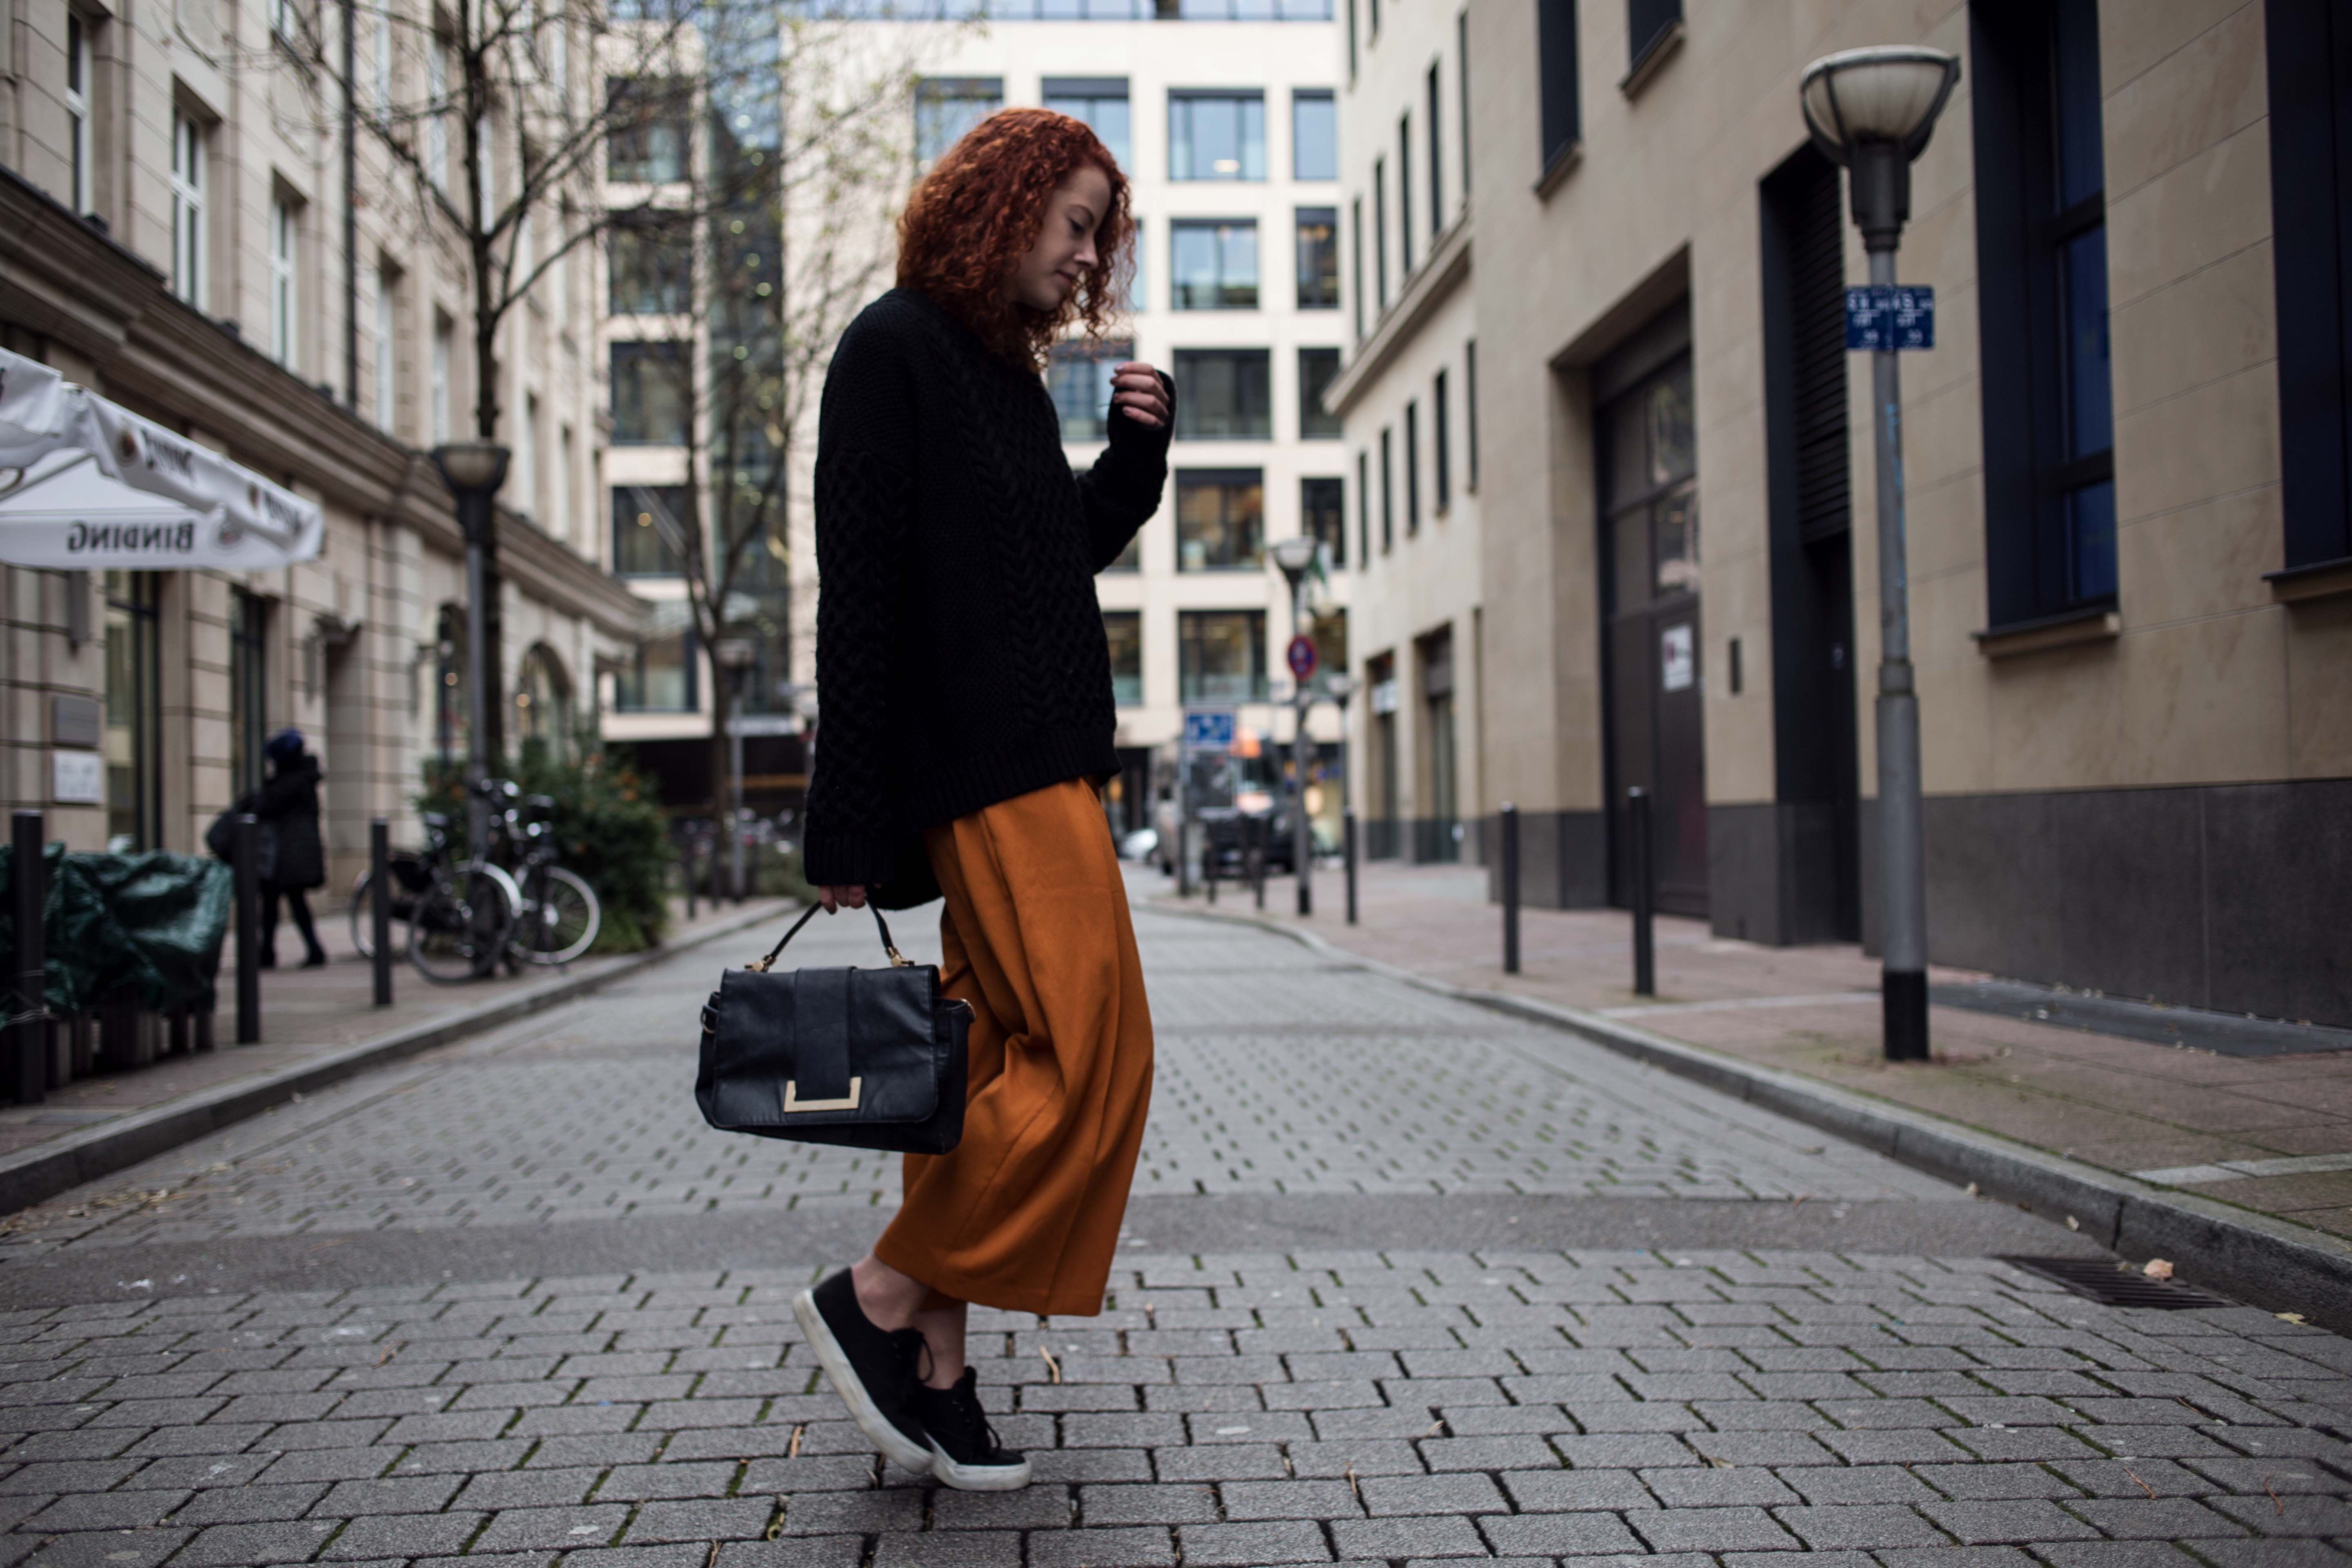 parisian style paris style denim jacket jeansjacke denim on denim outfit blogger frankfurt ootd lookbook look thecurledgirl the curled girl autumn inspiration herbst winter camel coat edgy nike sneaker boots pullover layering asos curls ffm mode fashion frankfurt streetstyle